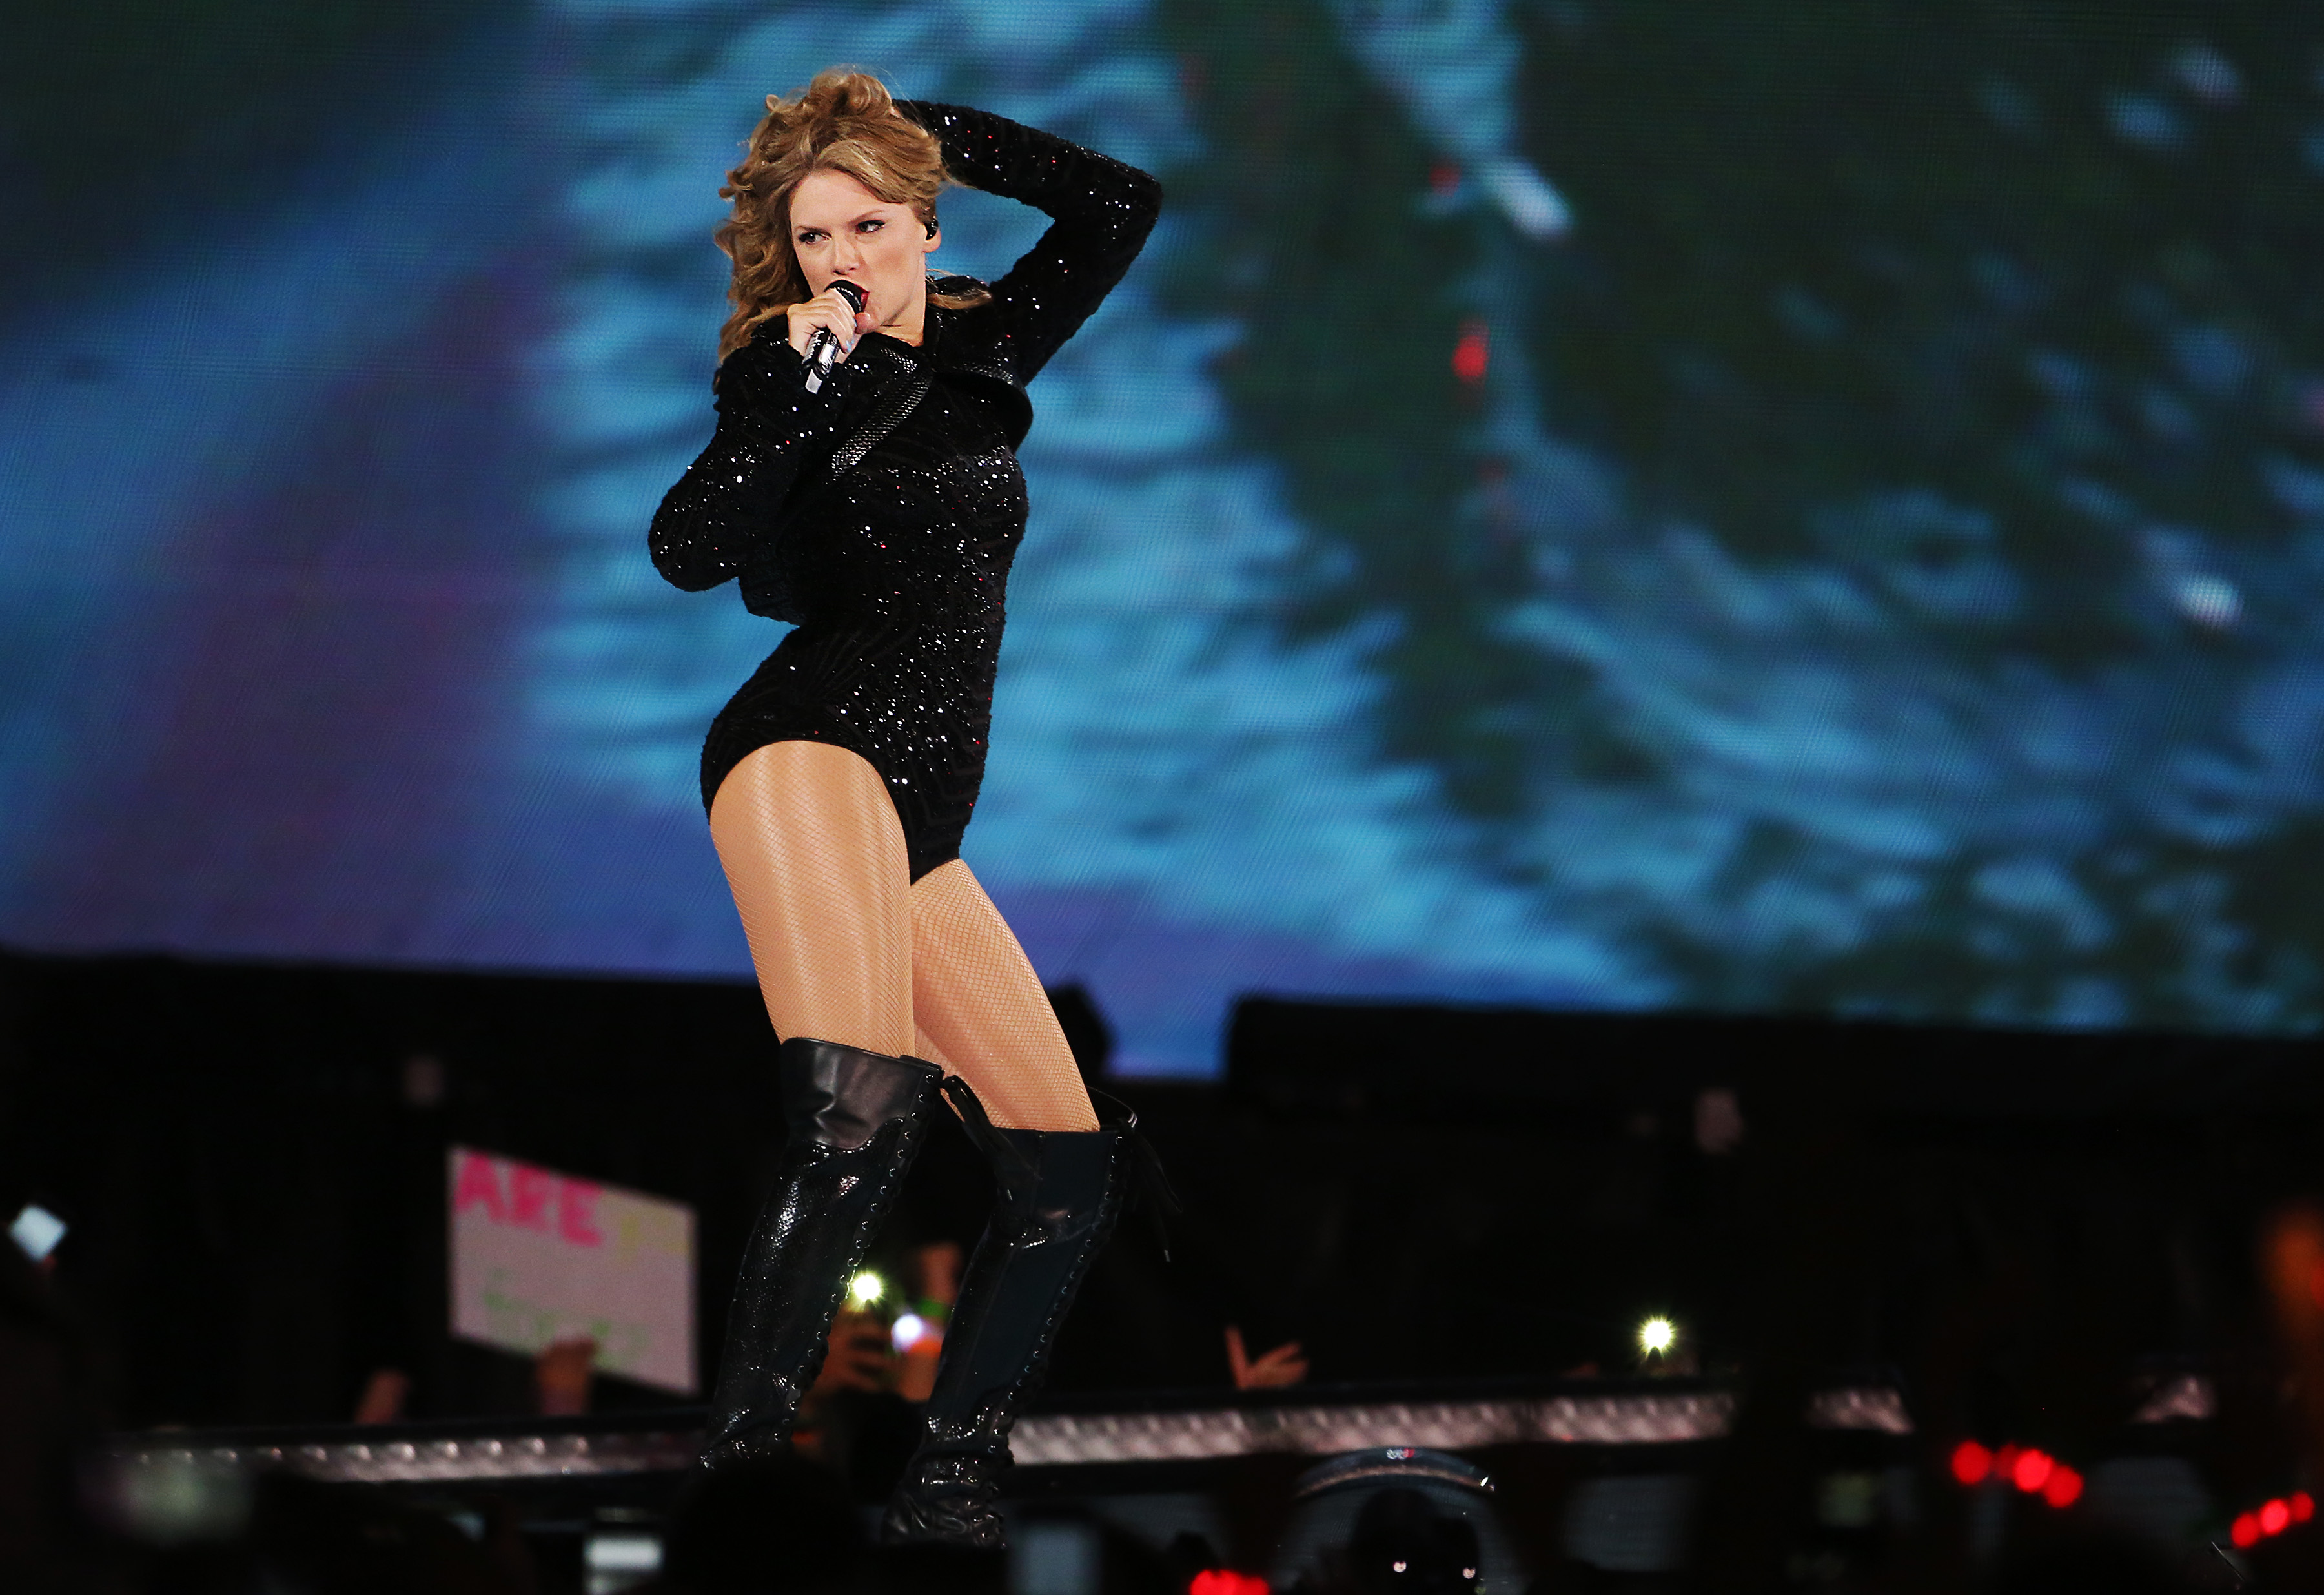 Taylor Swift Covers A Lot Of Ground In Gillette Stadium Show The Boston Globe